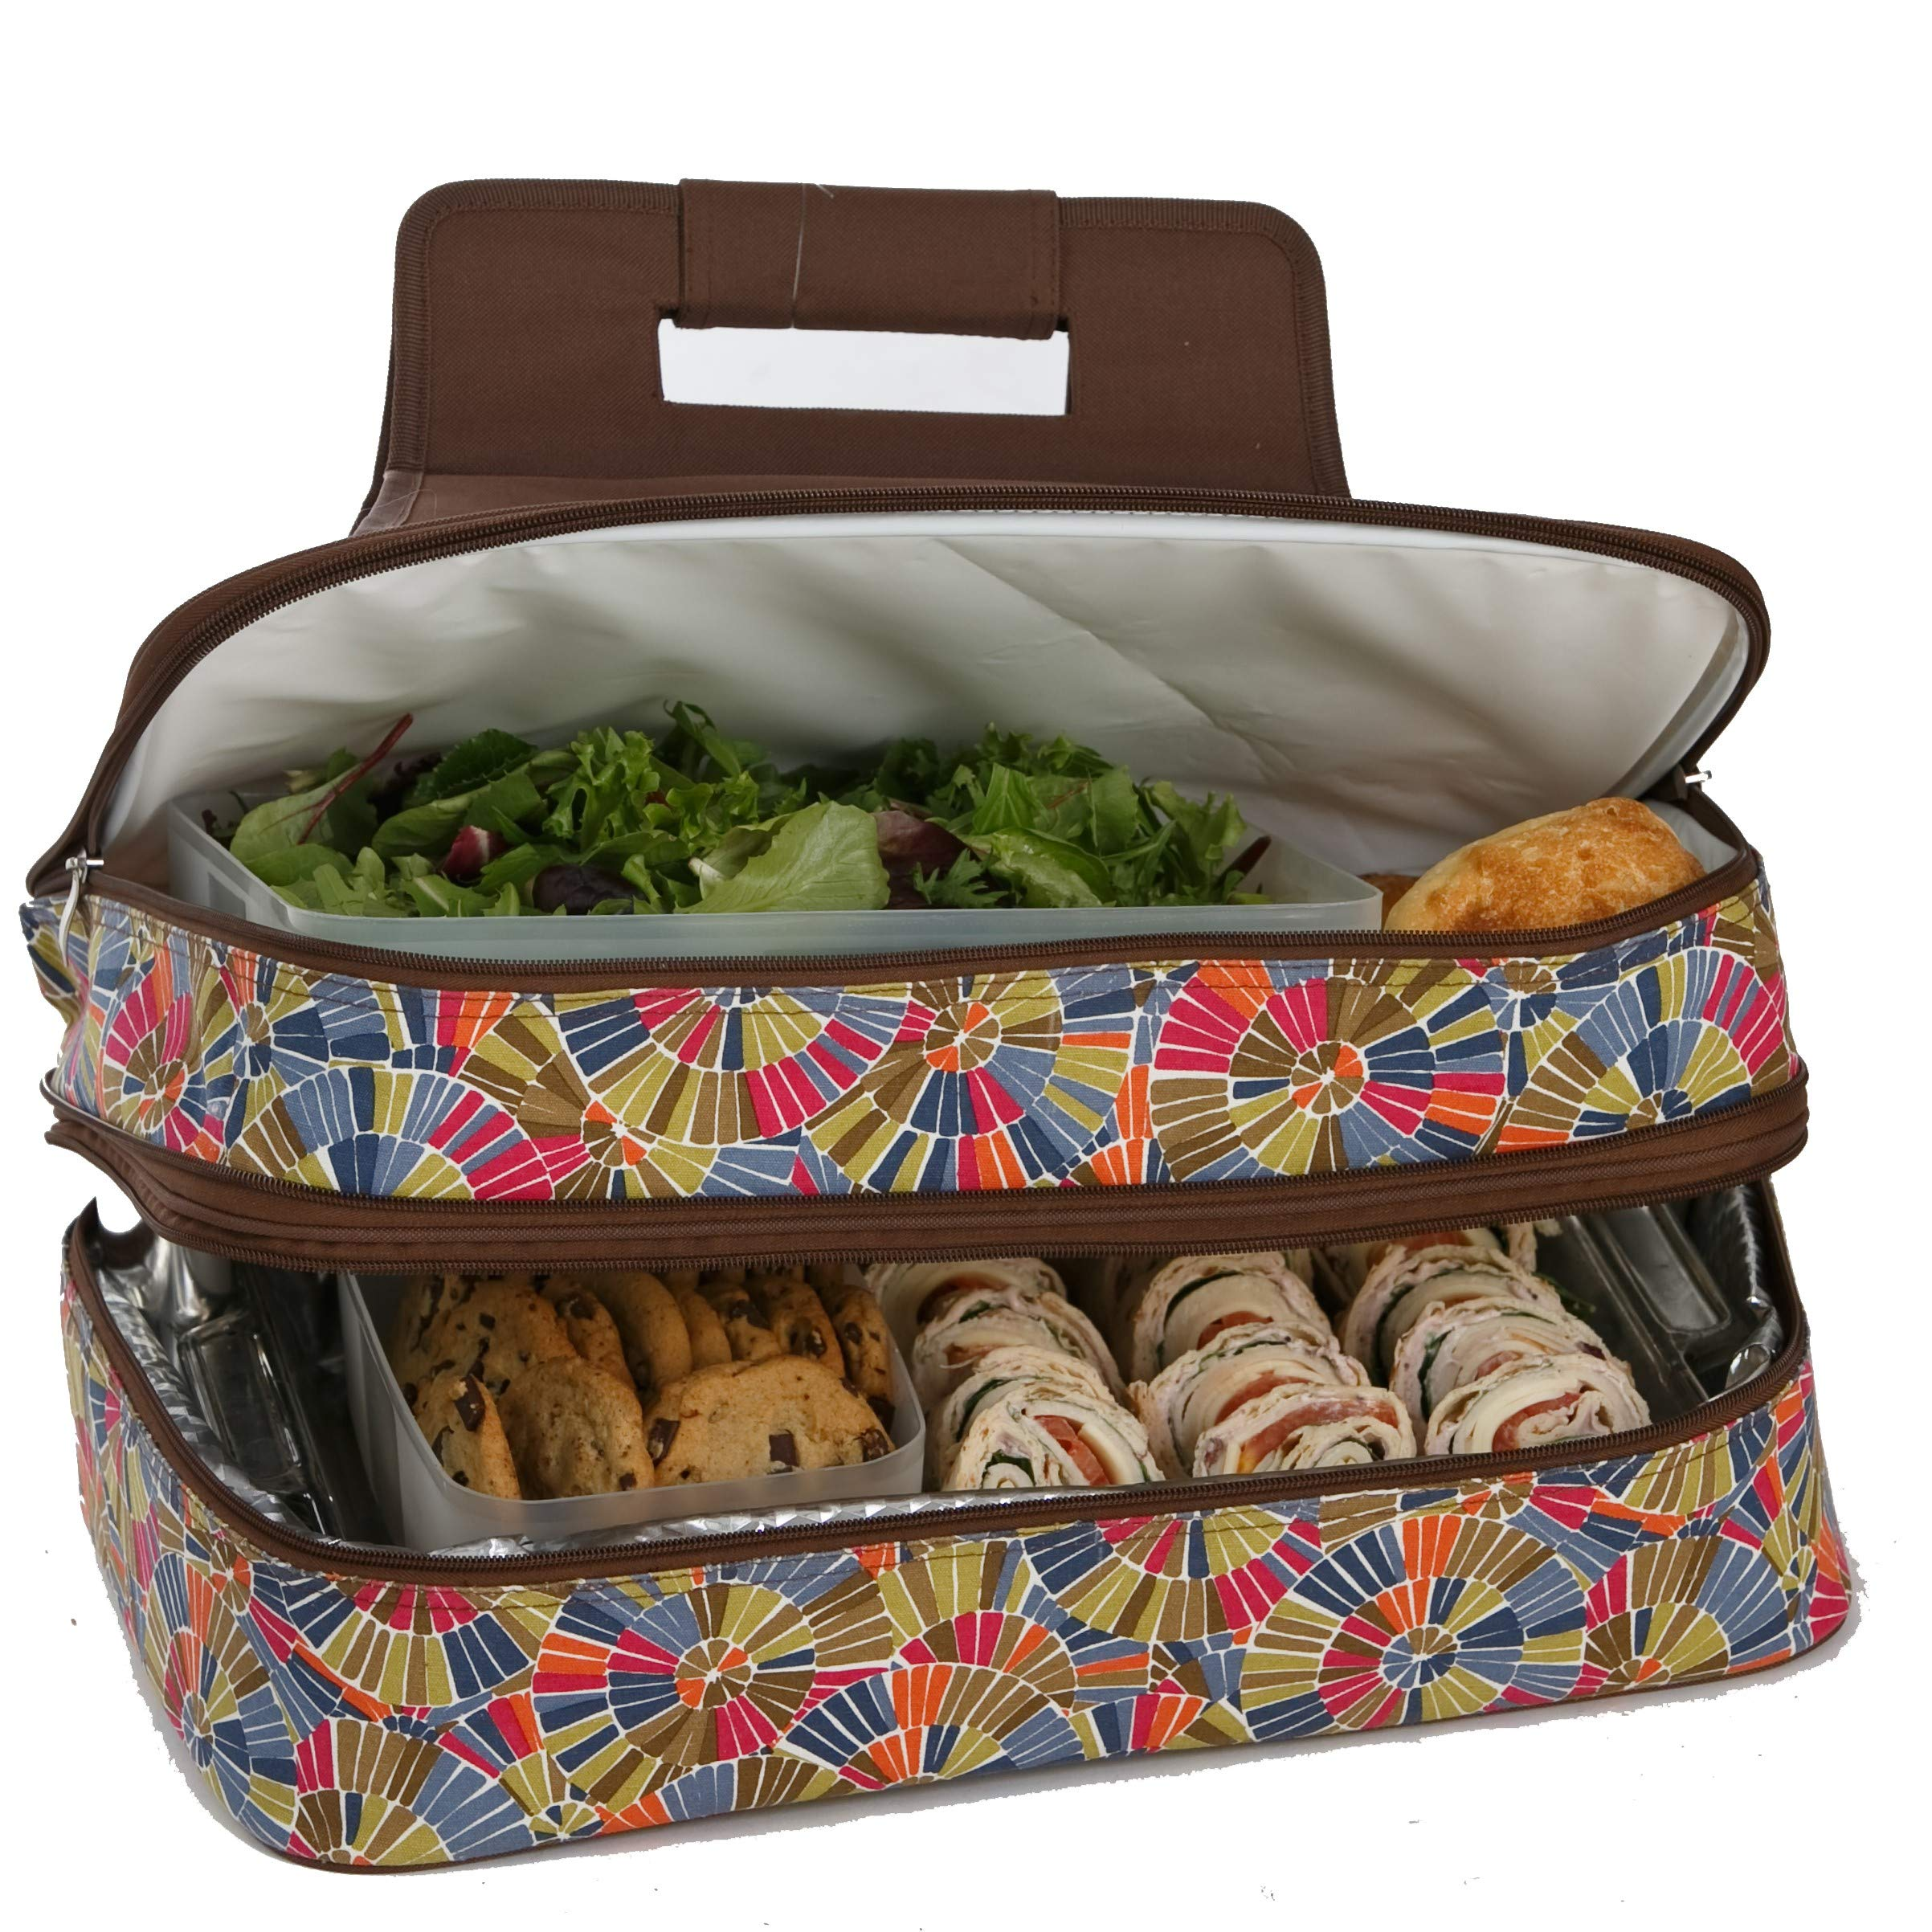 Picnic Plus 18'' Casserole Carrier 2 Level Thermal Insulated Hot and Cold Food Carrier Double Layer Food Carrier Bag Potluck Carrier With Bonus Containers (Kaleidoscope)